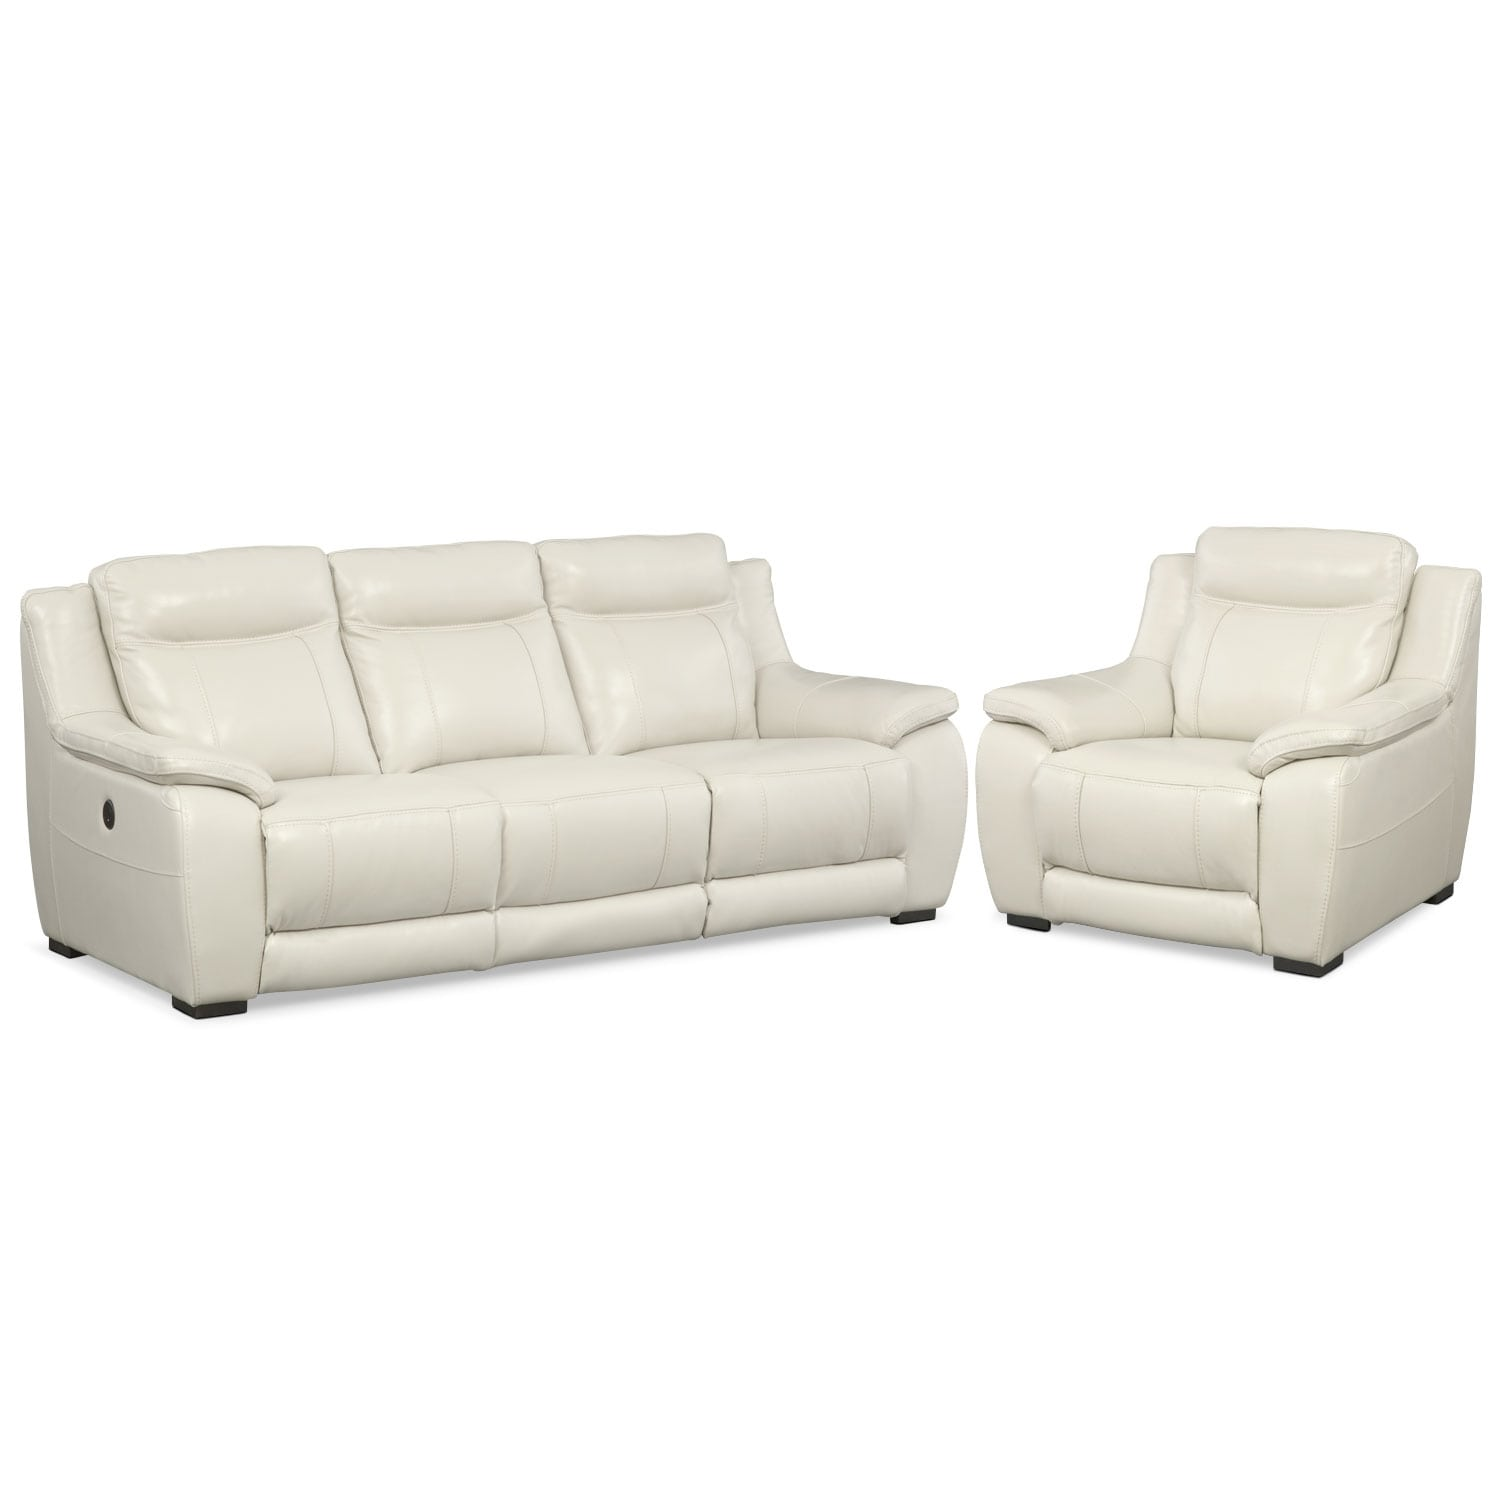 Lido Power Reclining Sofa and Recliner Set - Ivory